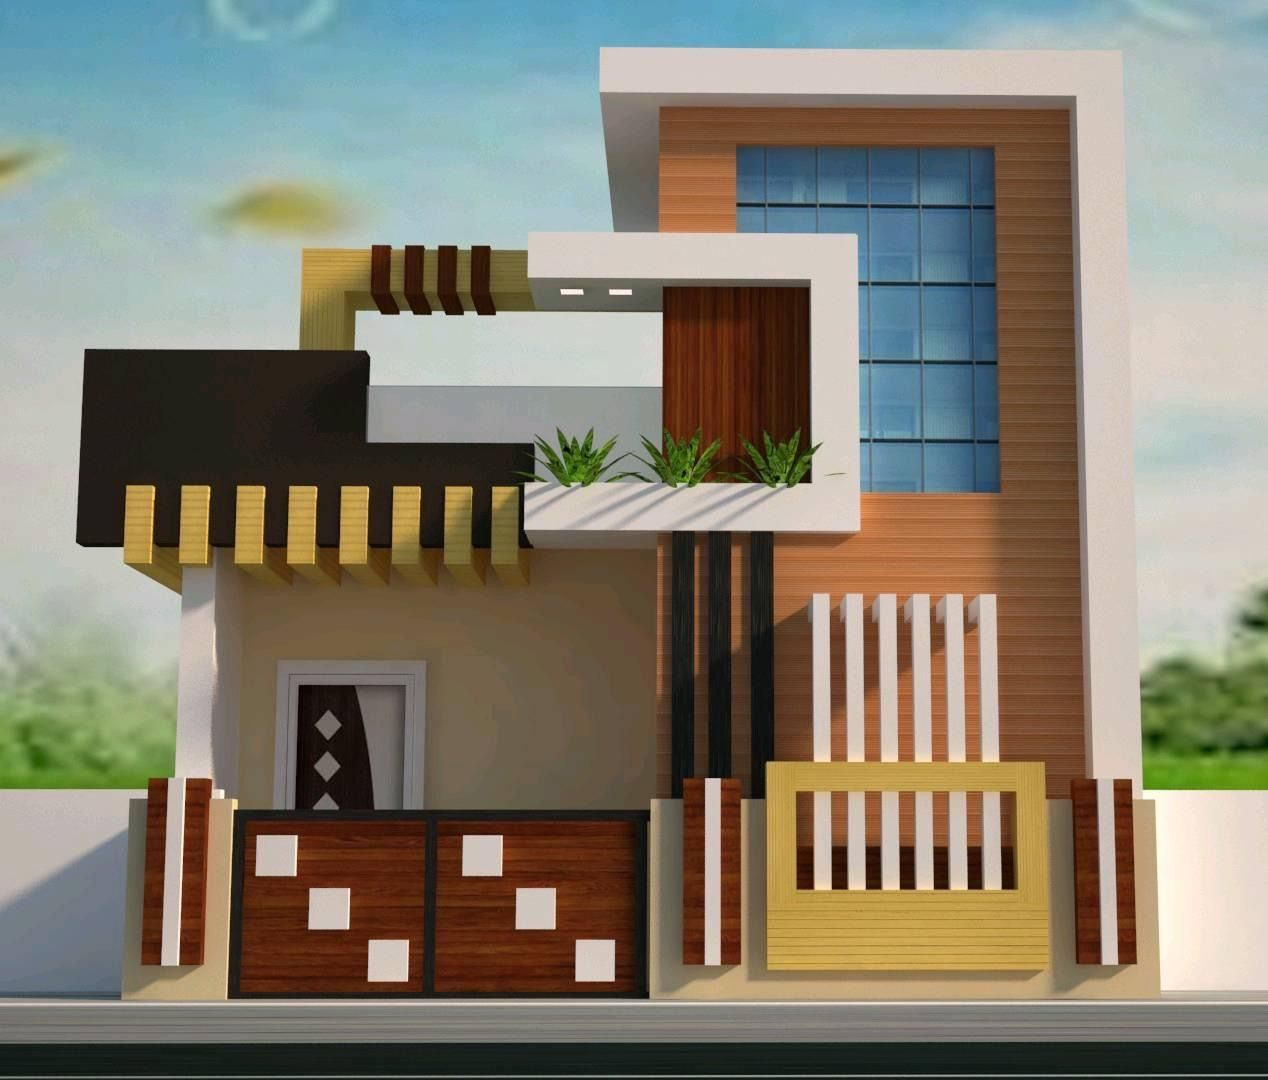 Smart house | Small house elevation design, House ...